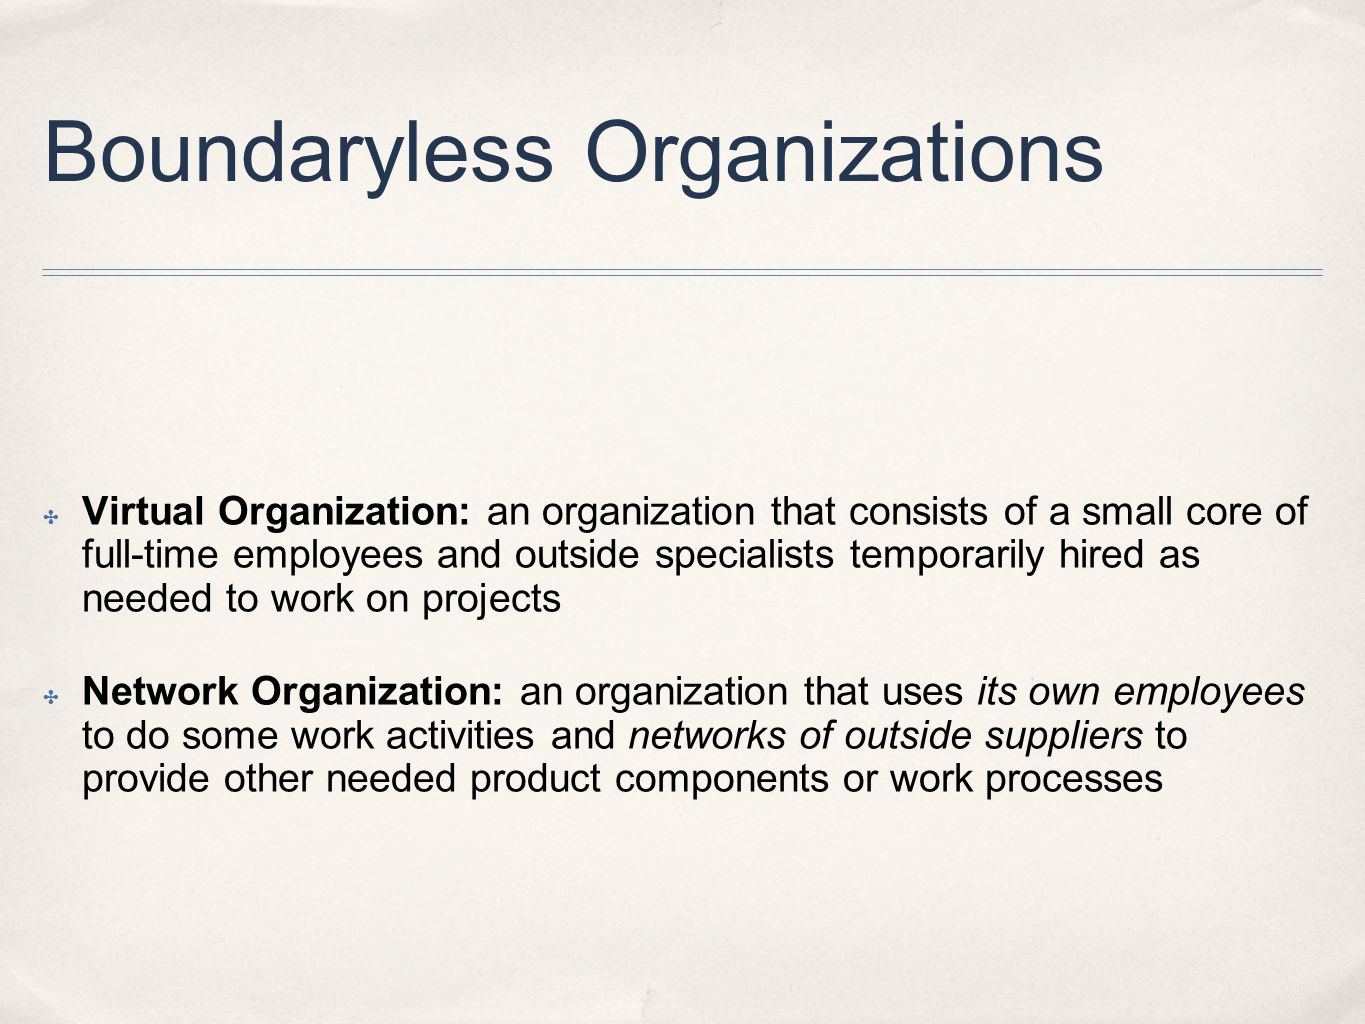 The Structure of a Boundaryless Organization